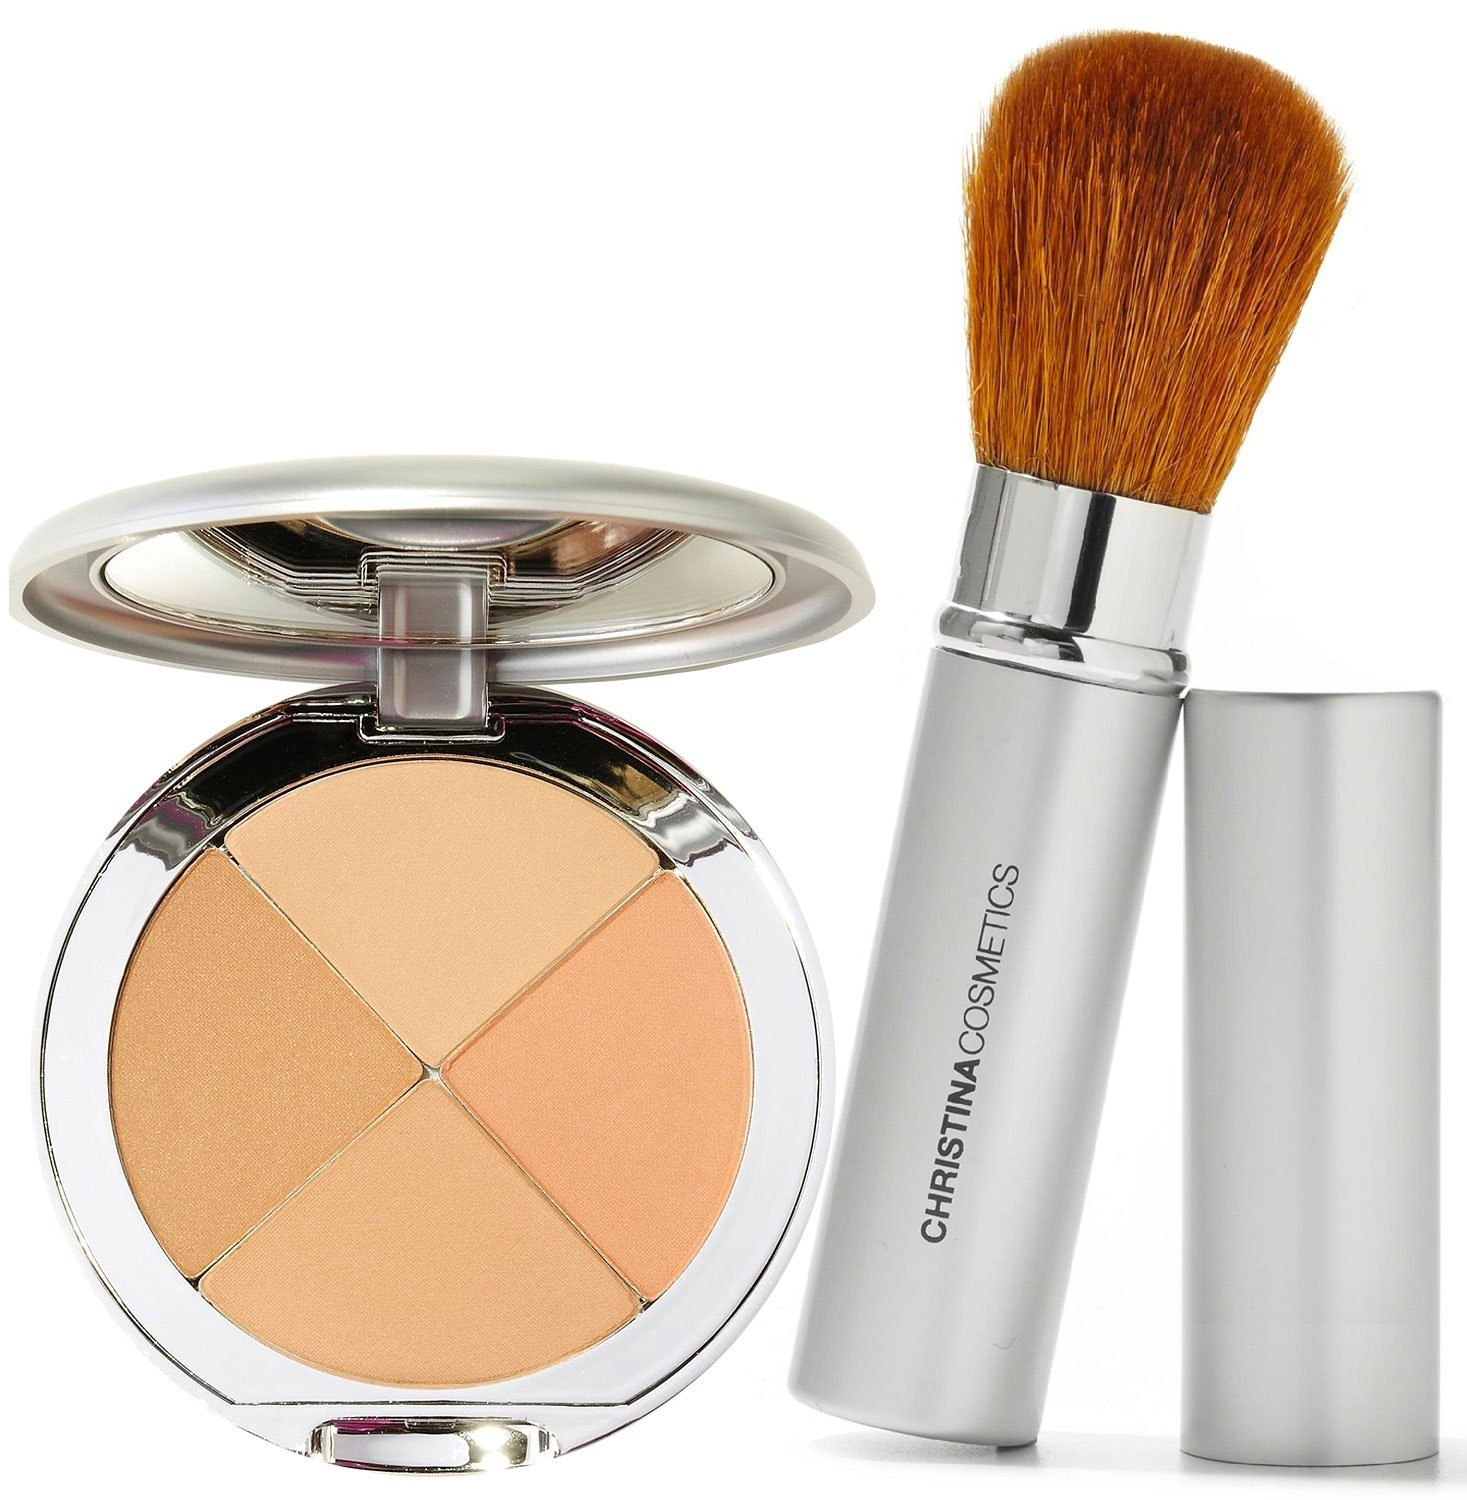 Christina Cosmetics Perfect Pigment 2 Compact and Retractable Brush Duo! by Christina Cosmetics